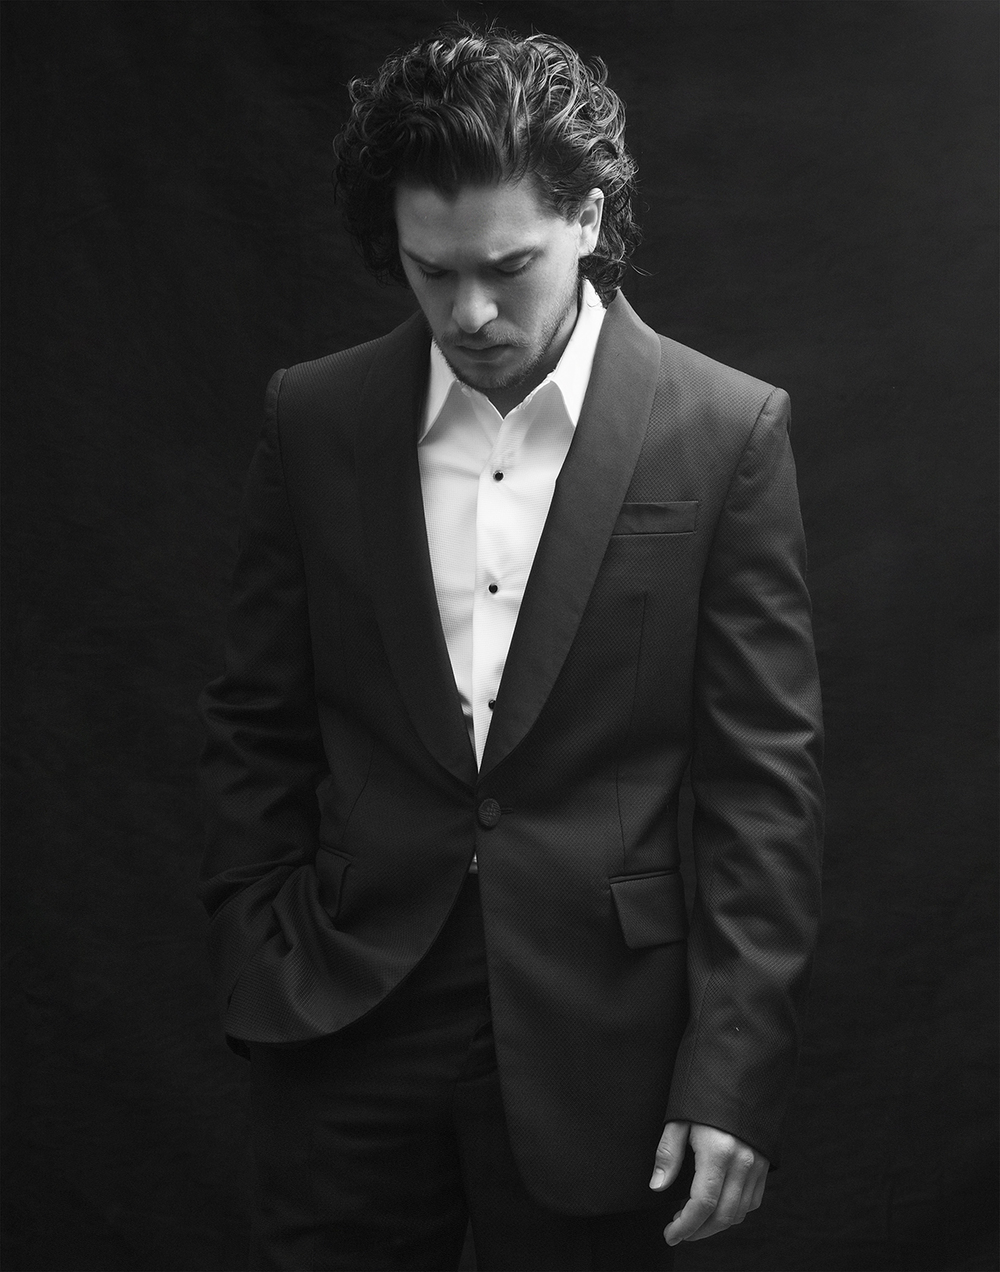 20130421_Kit_Harington_Shot_01_043(PF).jpg